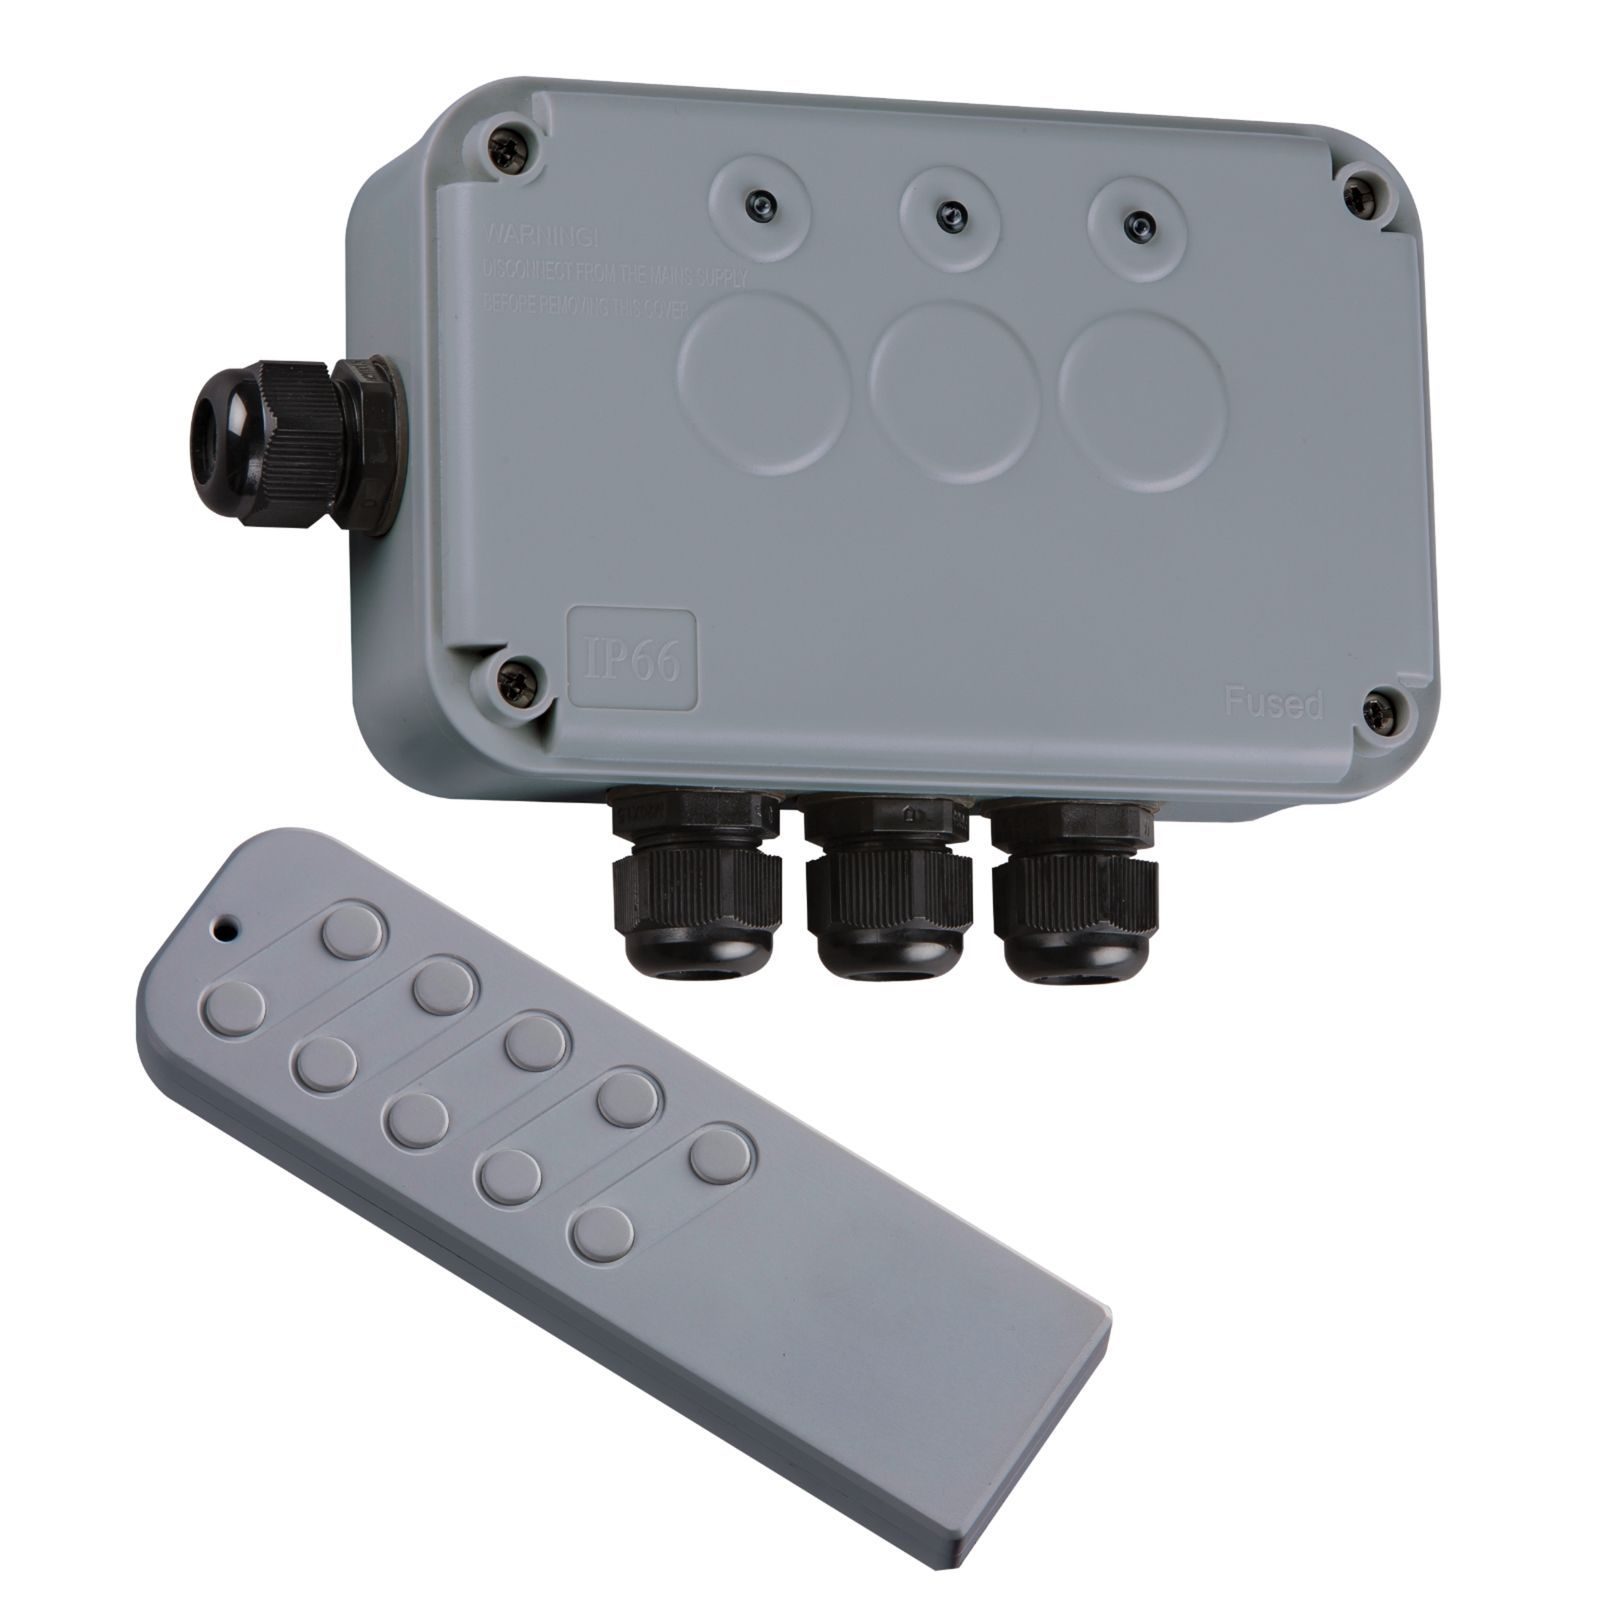 Knightsbridge ip663g outdoor remote controlled wireless lighting switch box kit for Remote control exterior lights